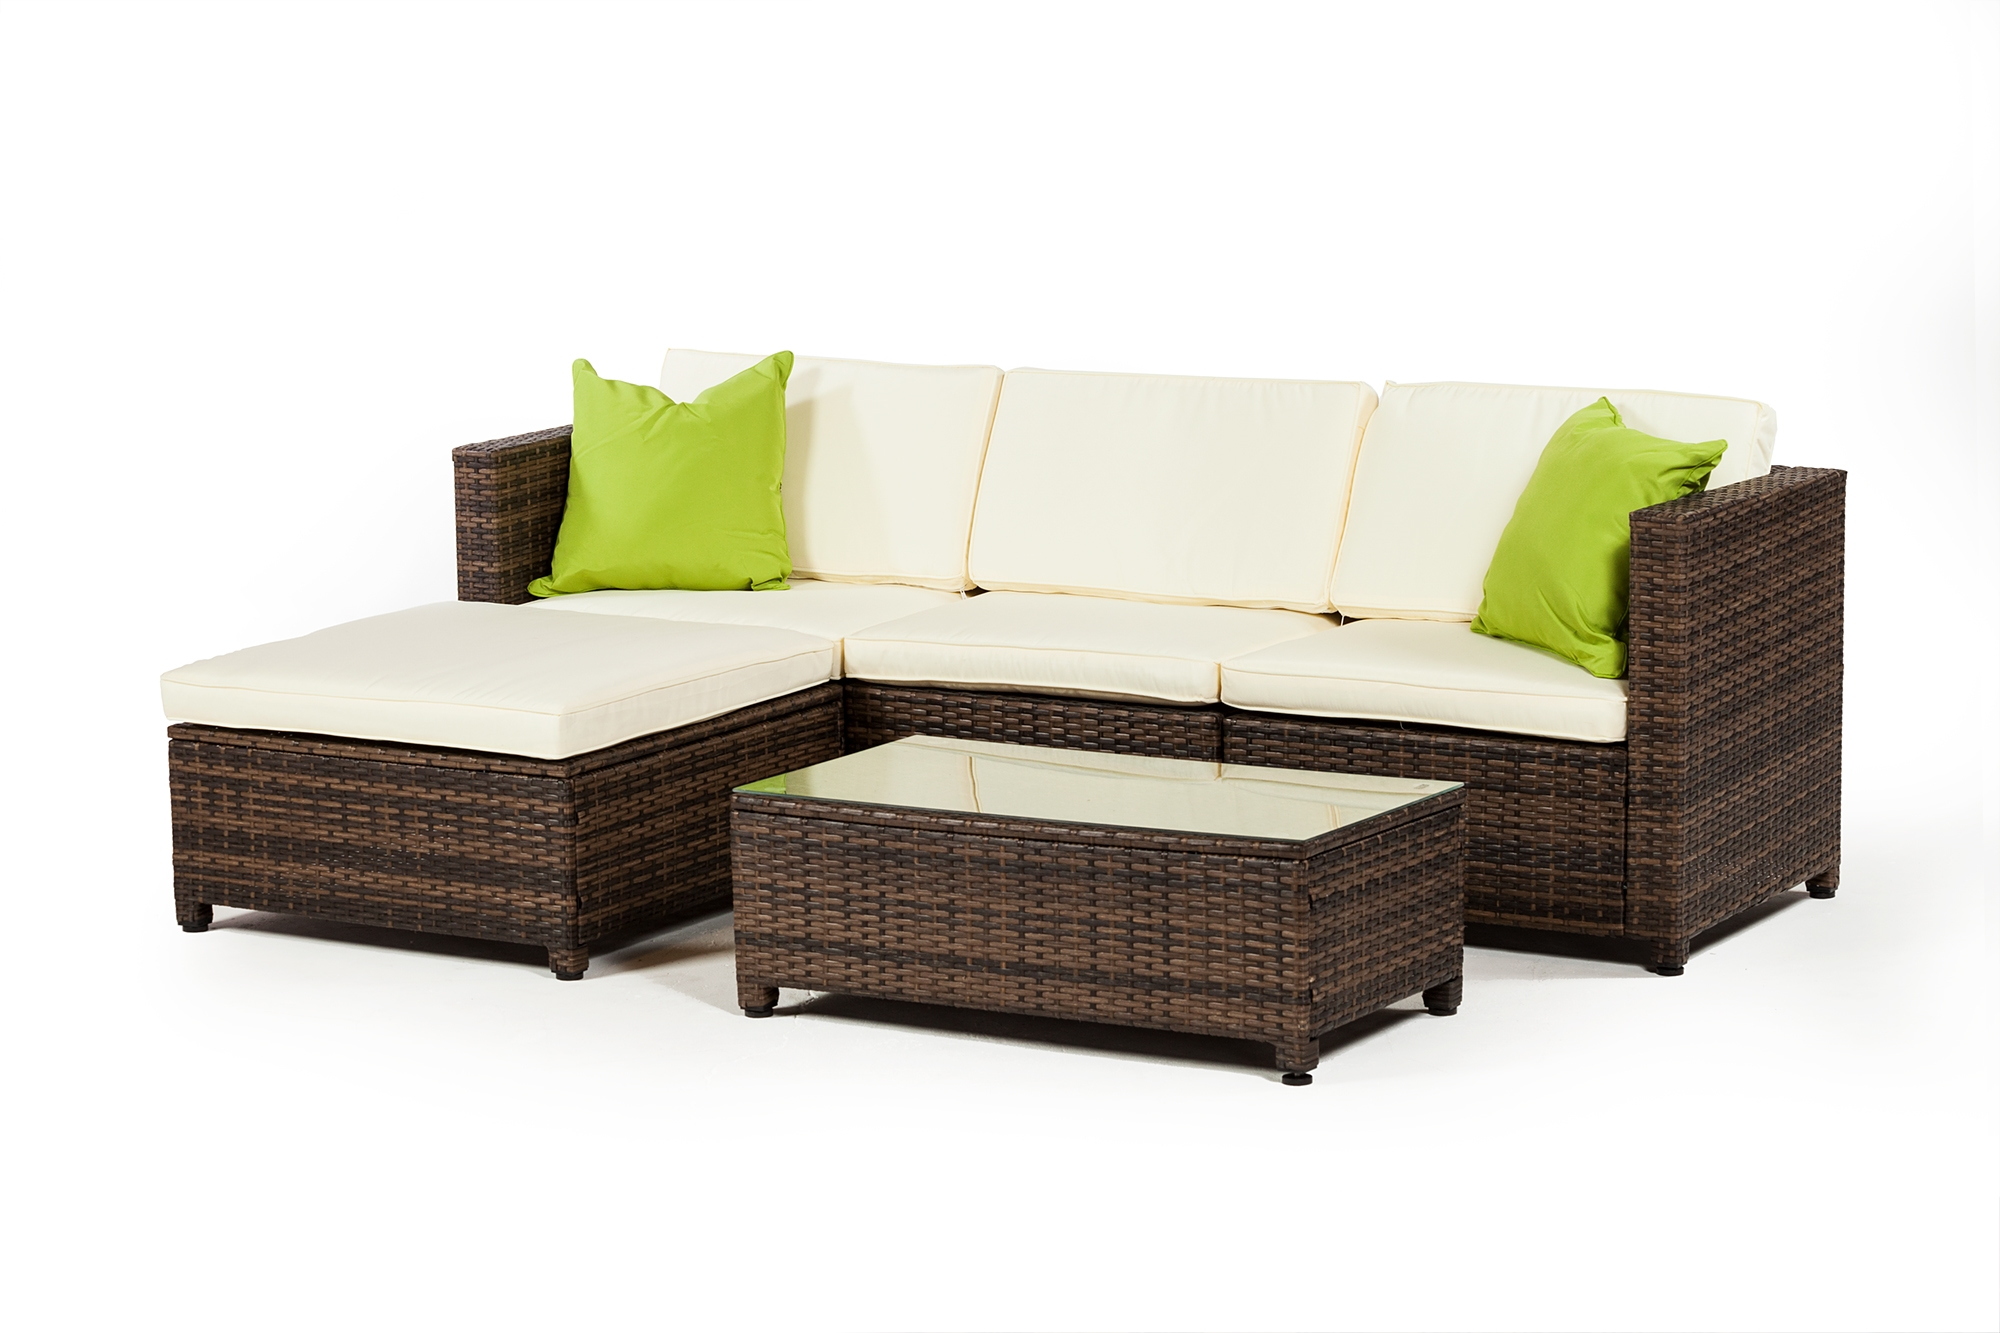 Rattan 3 Piece Sofa Outdoor Furniture 3 Piece Set With Ottoman In Grey Rattan